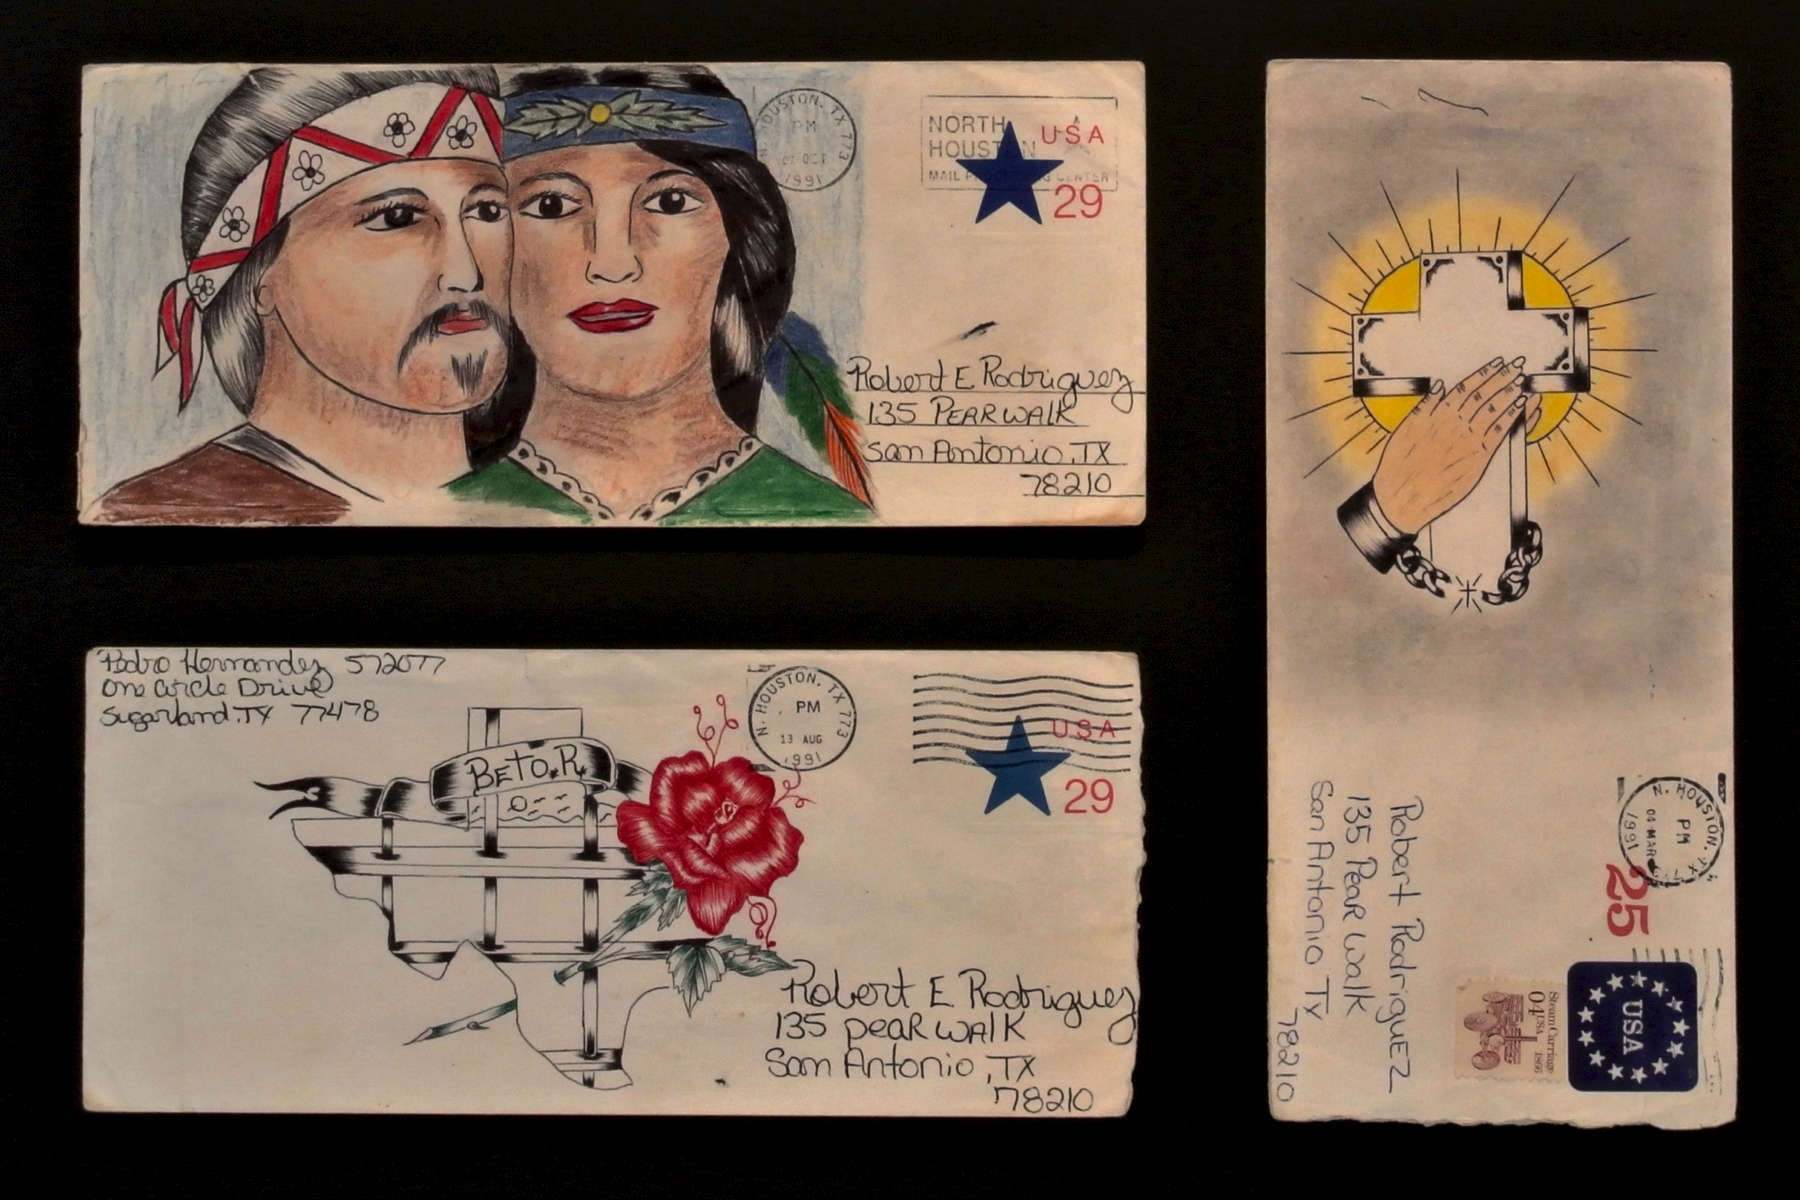 """Pedro HernandezGrouping of 3 Paños Envelopes*Framed size:  54,5 x 74,5 cmGraphite, colored pencil, pen and ink on stamped, franked envelopes1.  Hands and Cross, approx. 24,2 x 10,5 cm (95 x 41 inches) 2.  Indian couple, approx. 24,2 x 10,5 cm (95 x 41 inches)3.  """"Betor"""" with rose, approx. 24,2 x 10,5 cm (95 x 41 inches)*Chicano inmates use hand-decorated envelopes in color or black and white to mail letters and paños (prisoner folk art made on a handkerchief). Demand for these envelopes can provide a profitable business for a convict skilled in drawing.Please click here for a comprehensive essay on paños by Martha V. Henry."""